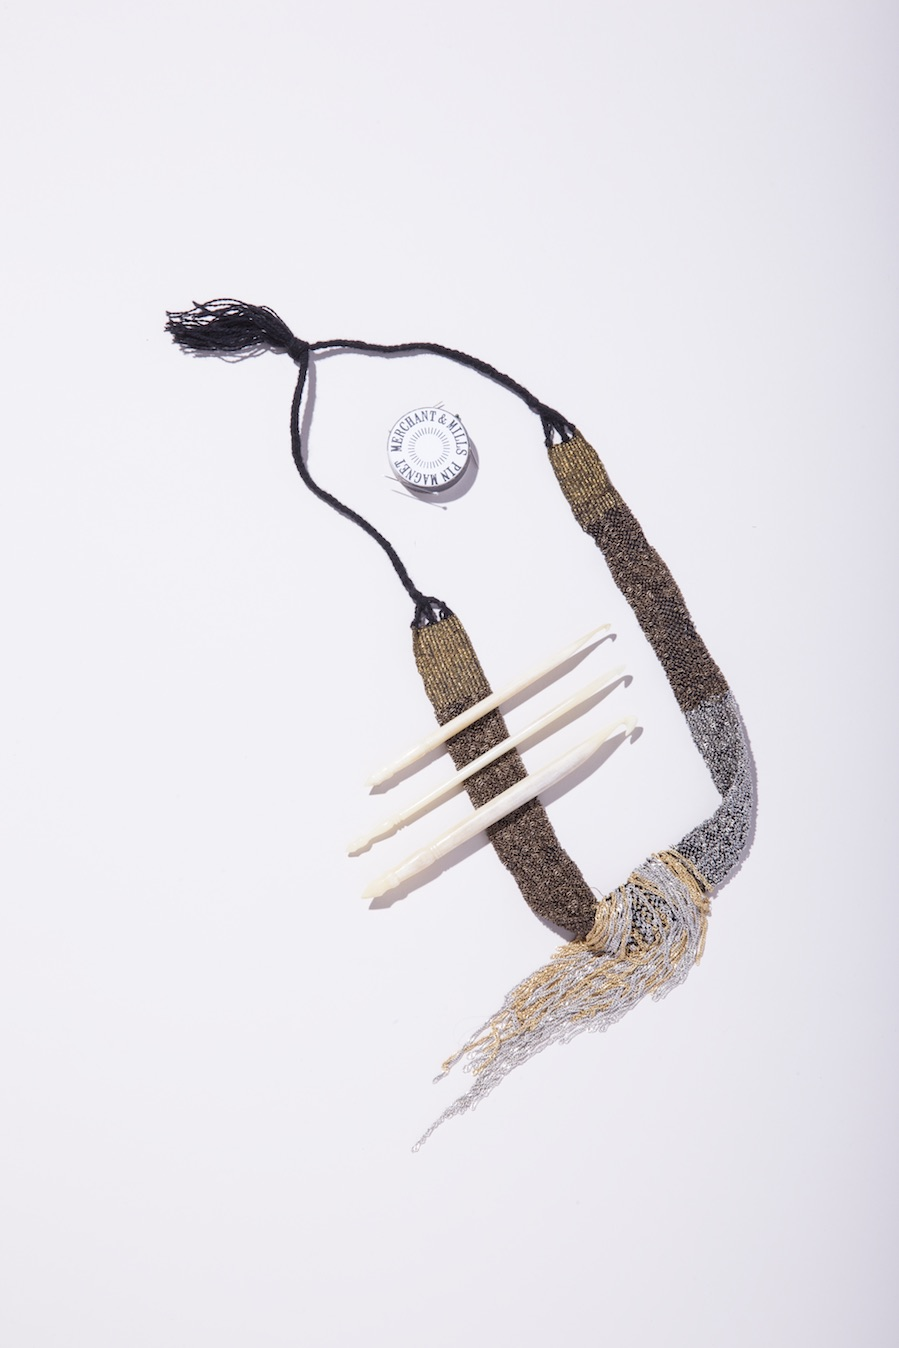 Jess Feury  Beaded Necklace;  Fringe Supply Co  Bone Crochet Hooks;  Merchant & Mills  Pin Magnet.